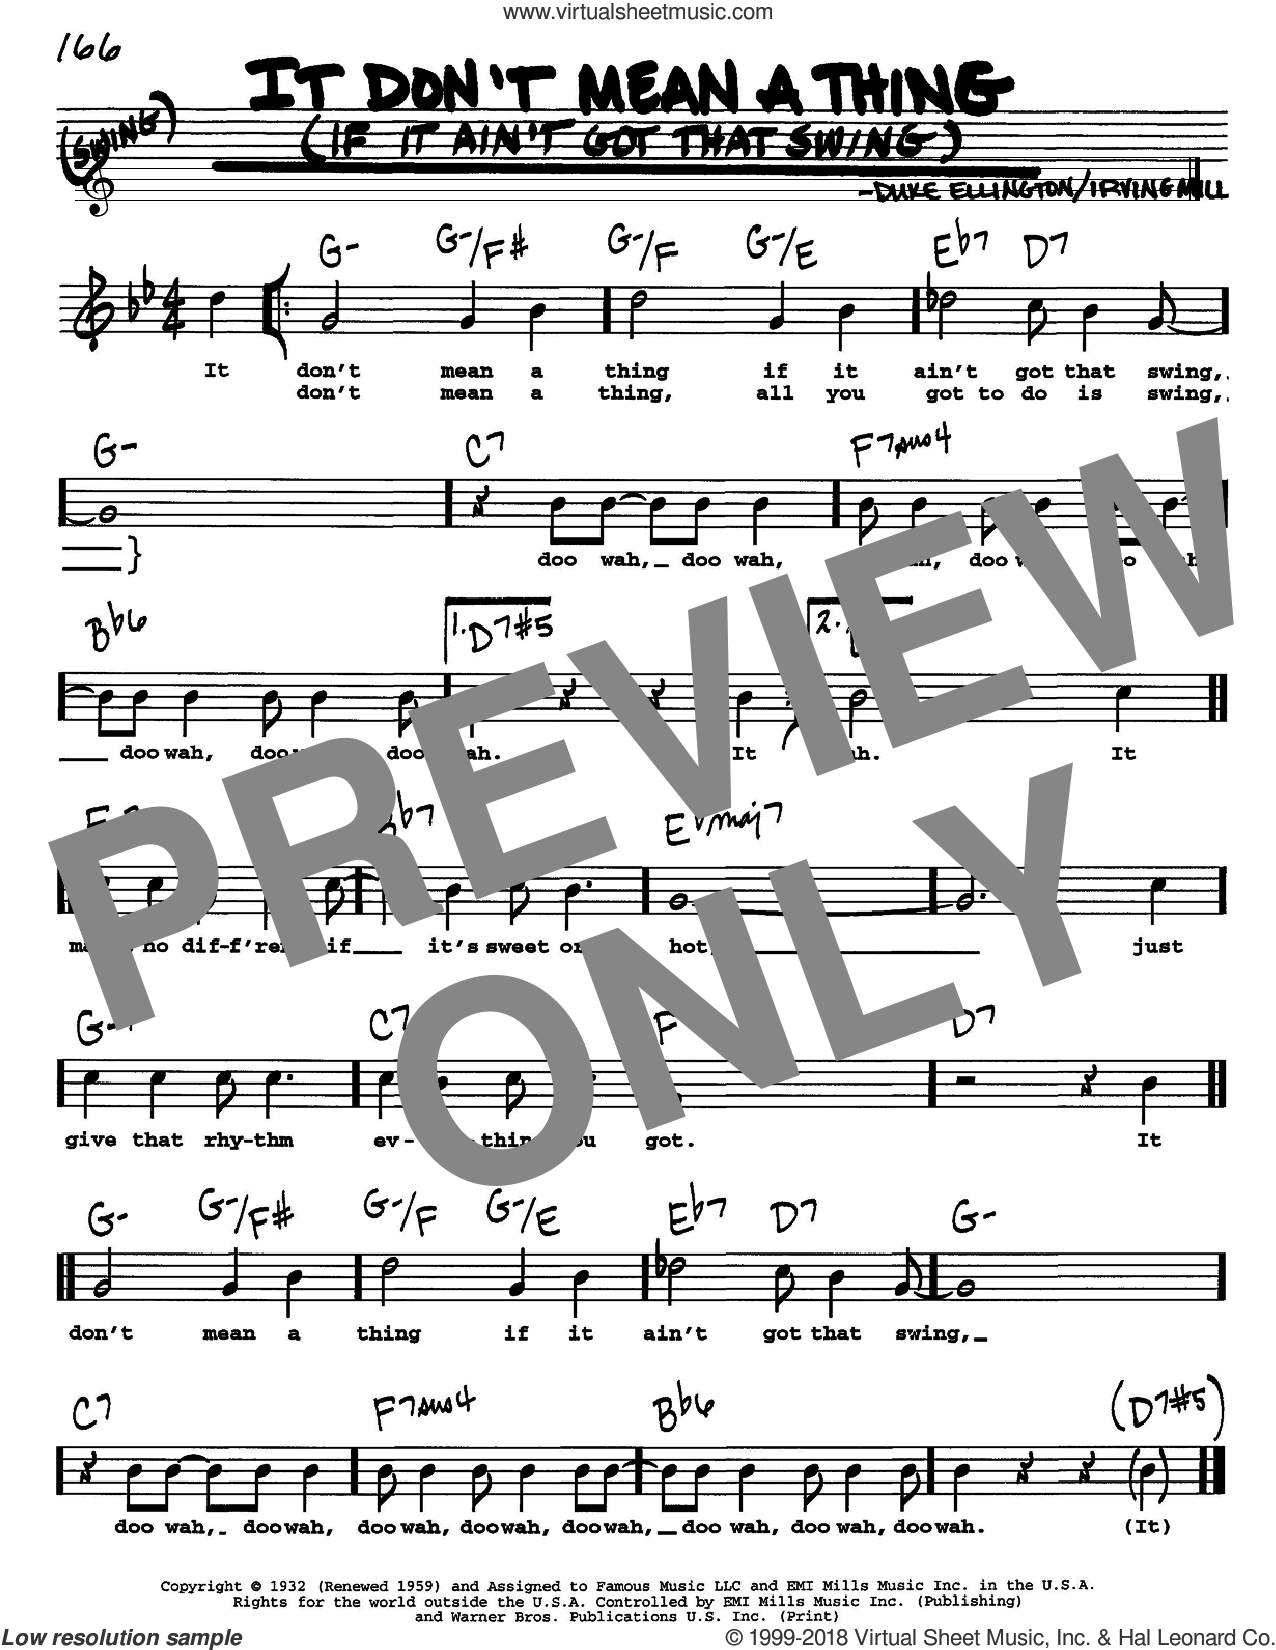 It Don't Mean A Thing (If It Ain't Got That Swing) sheet music for voice and other instruments (Vocal Volume 1) by Irving Mills and Duke Ellington. Score Image Preview.